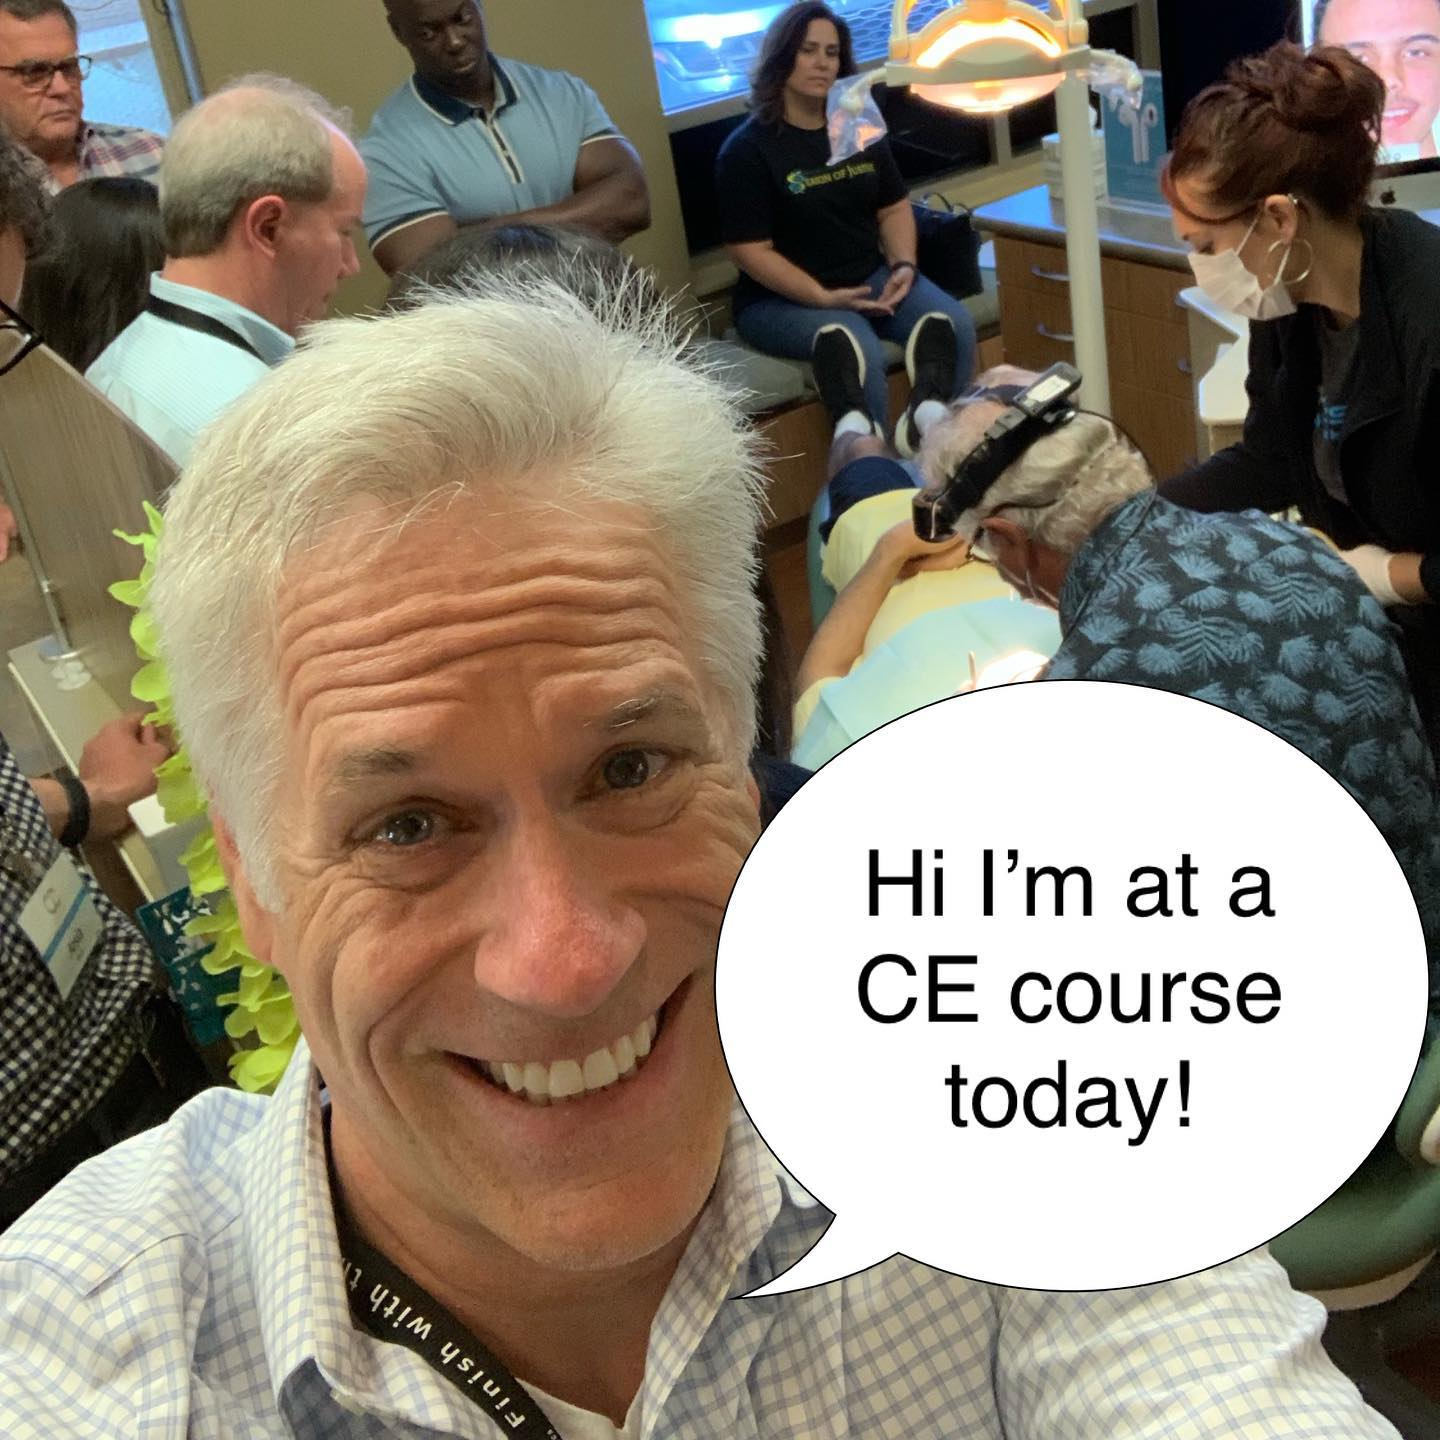 Dr. Roeder at a continuing education course